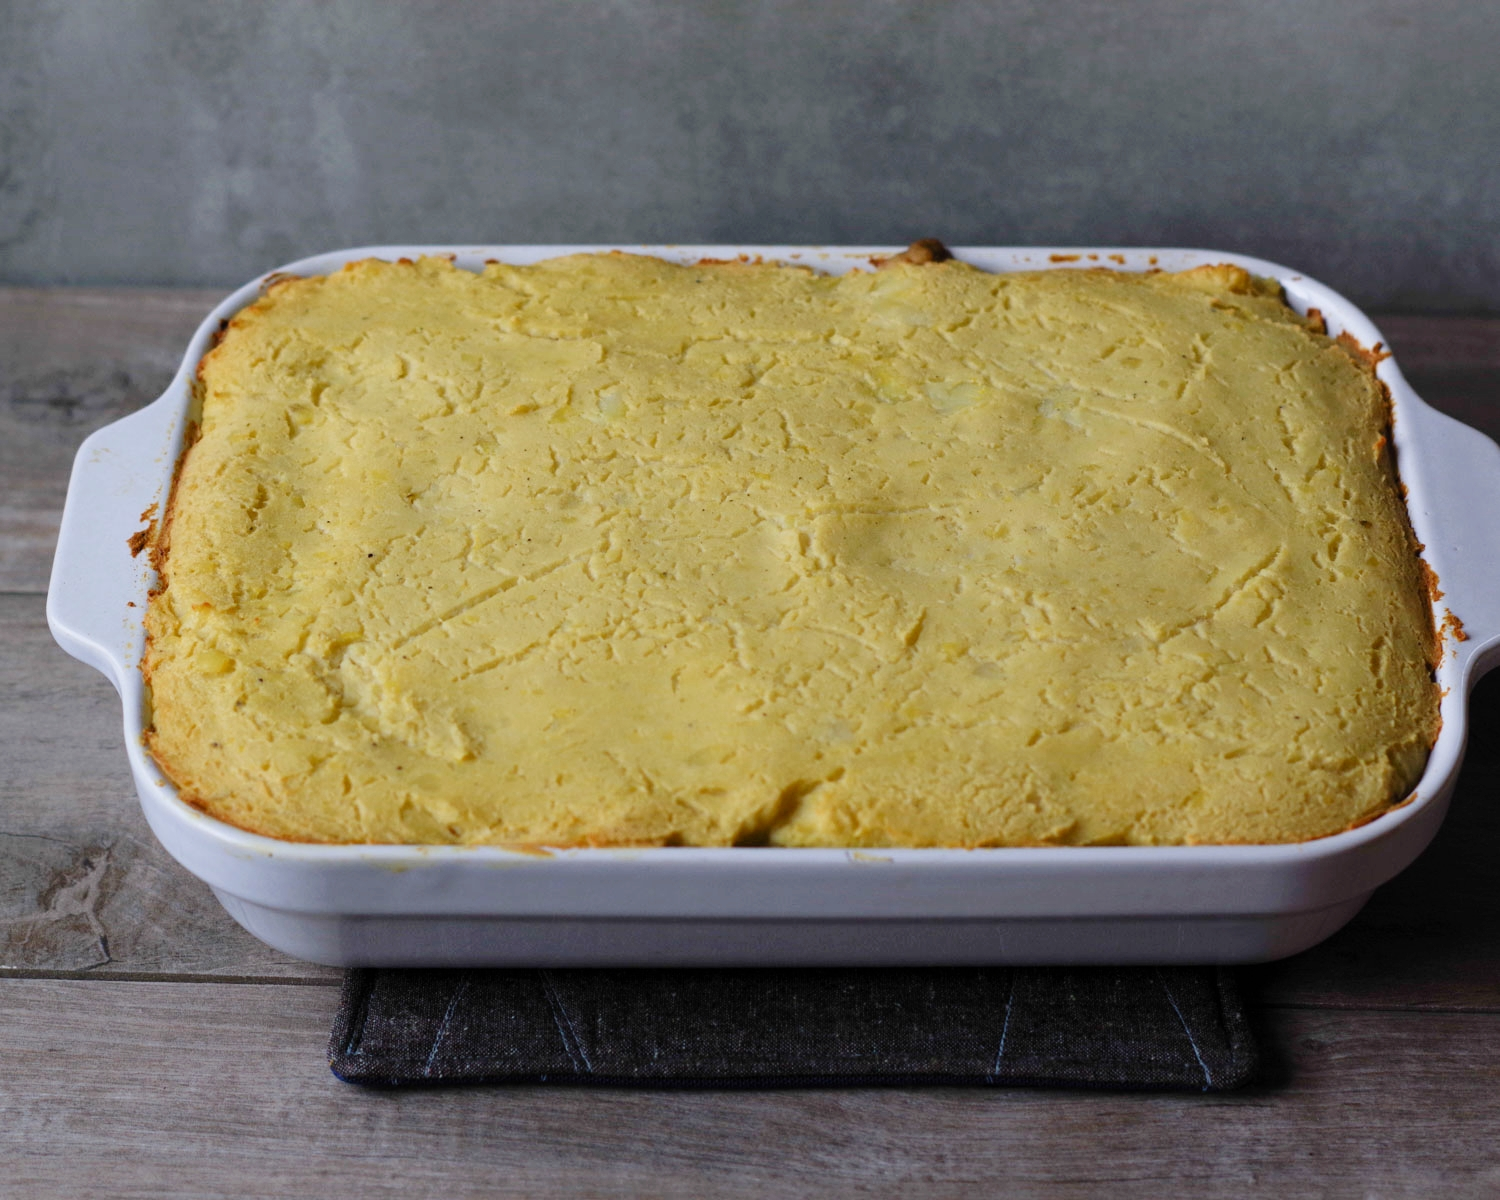 Shepherdless Pie for the Ultimate Vegan Thanksgiving